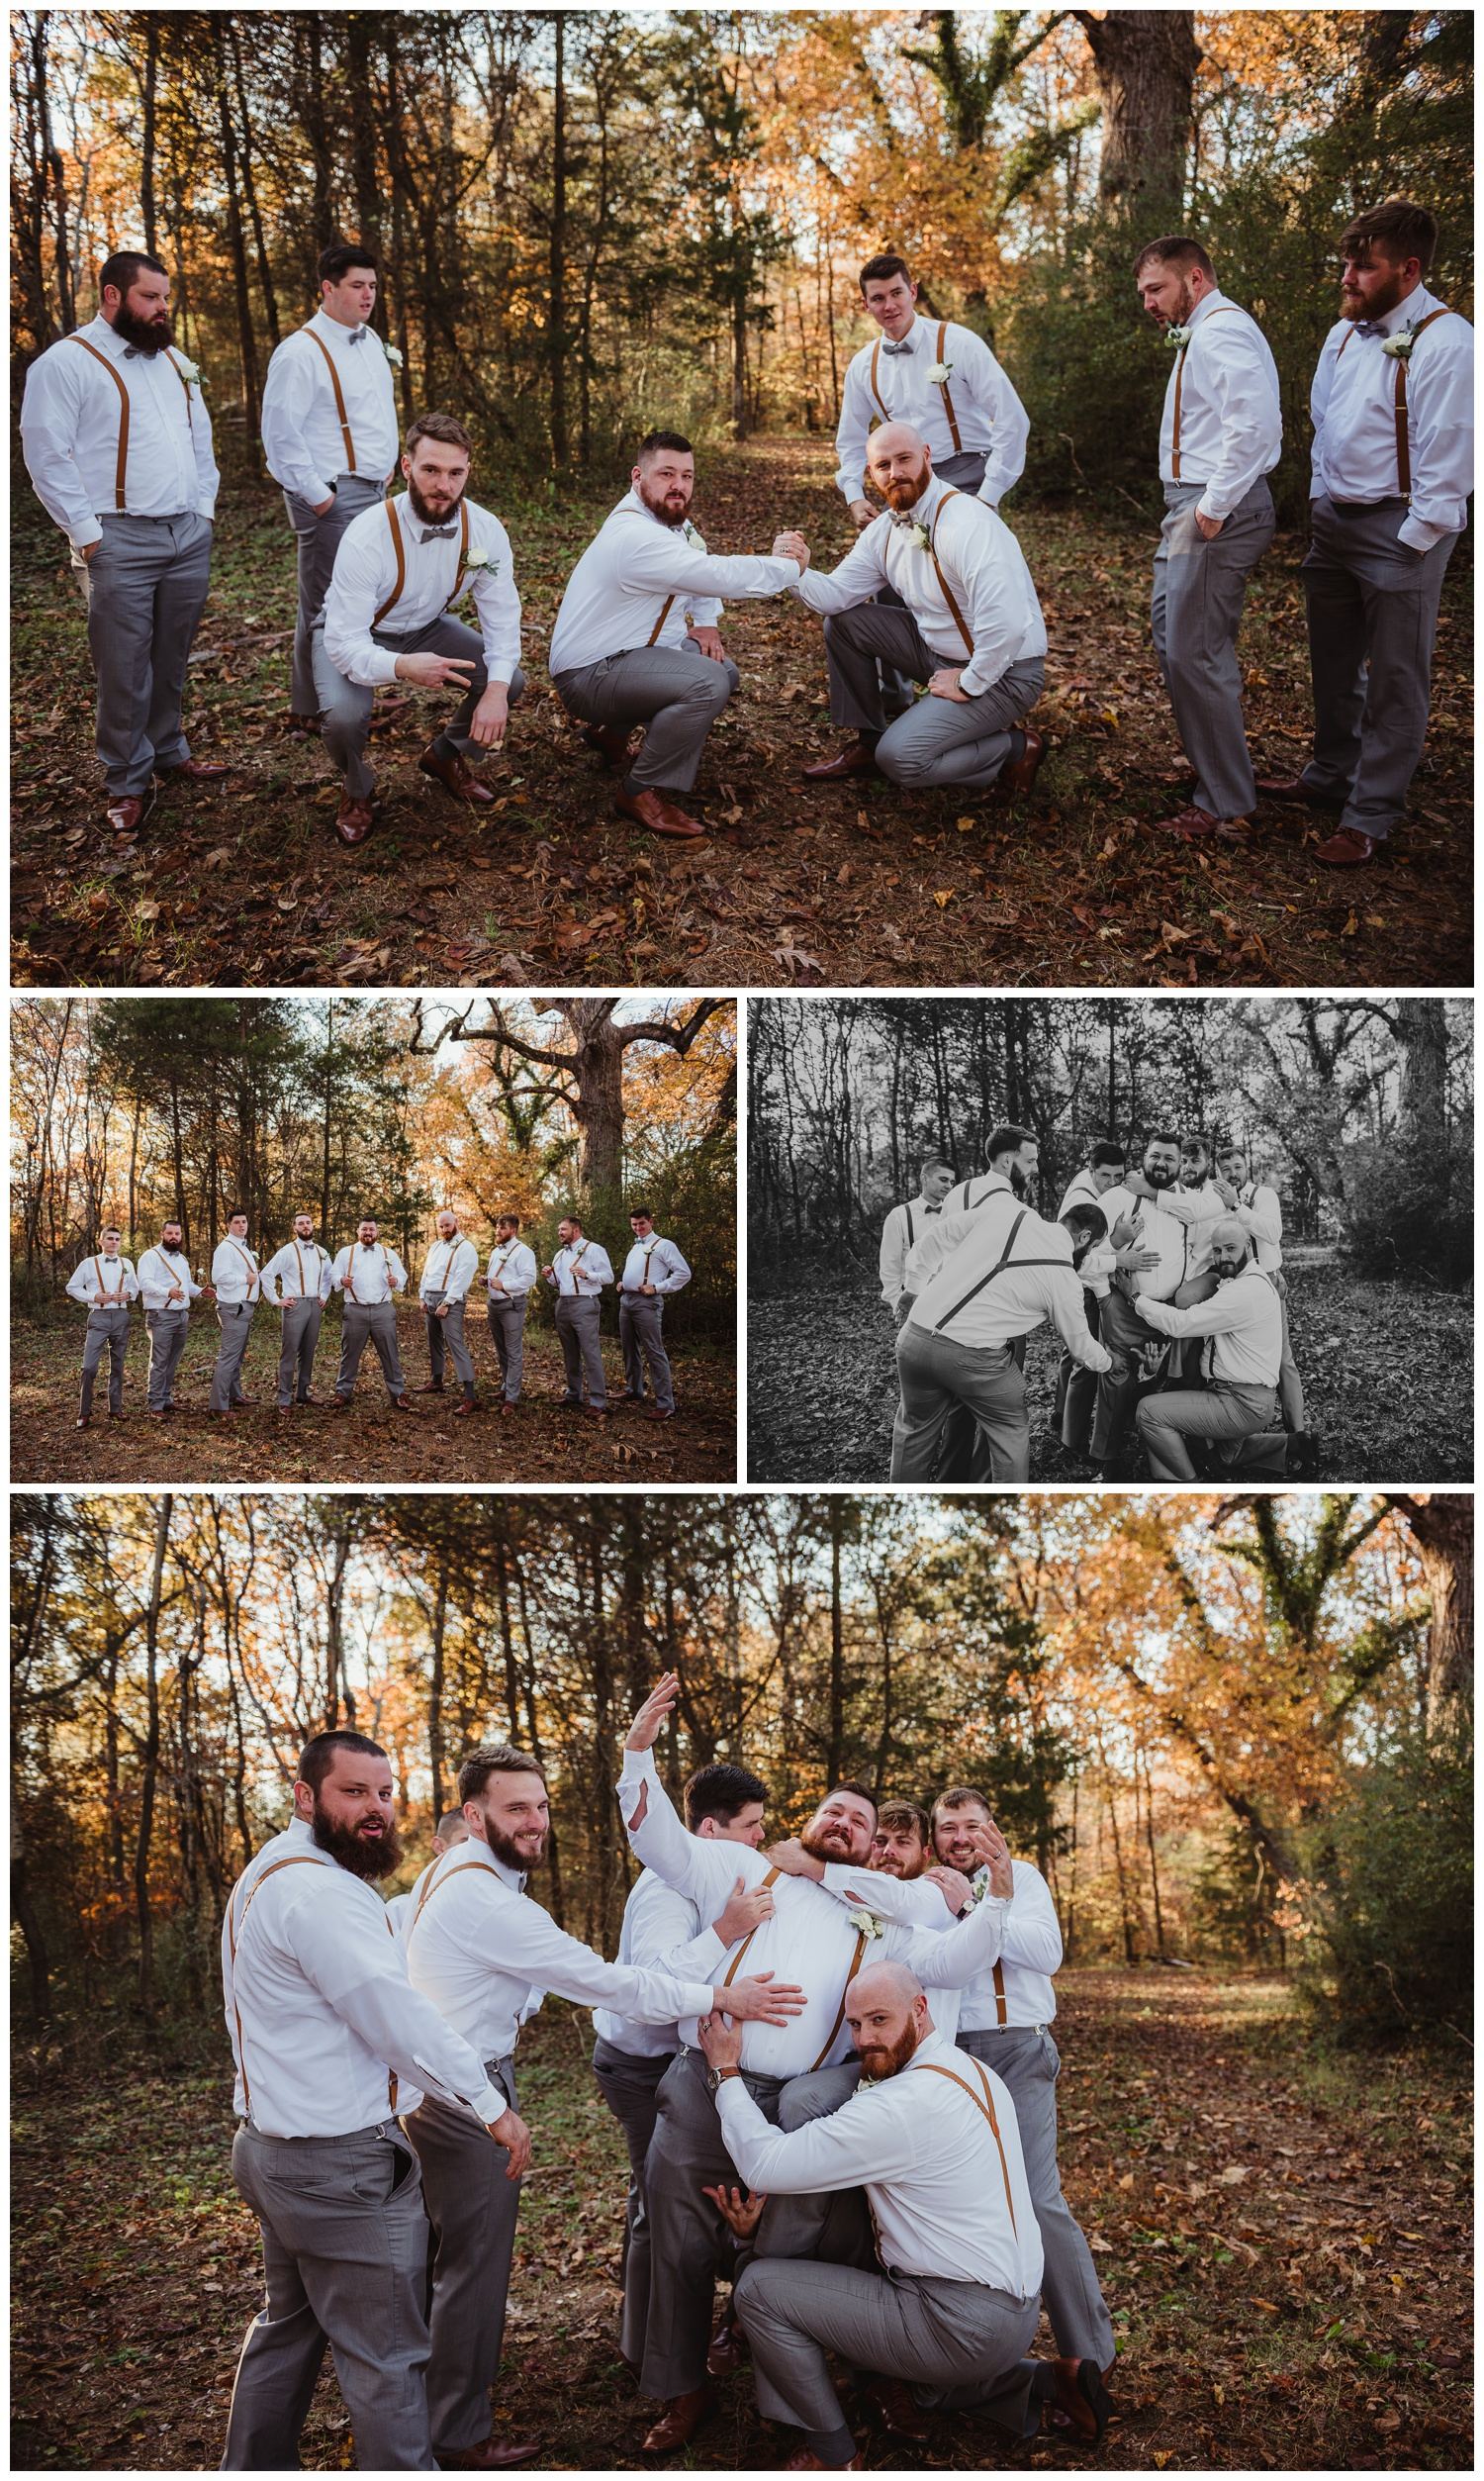 The groom poses with his groomsmen in the woods after their wedding ceremony at The Warren Estate, images by Rose Trail Images of Rolesville, NC.